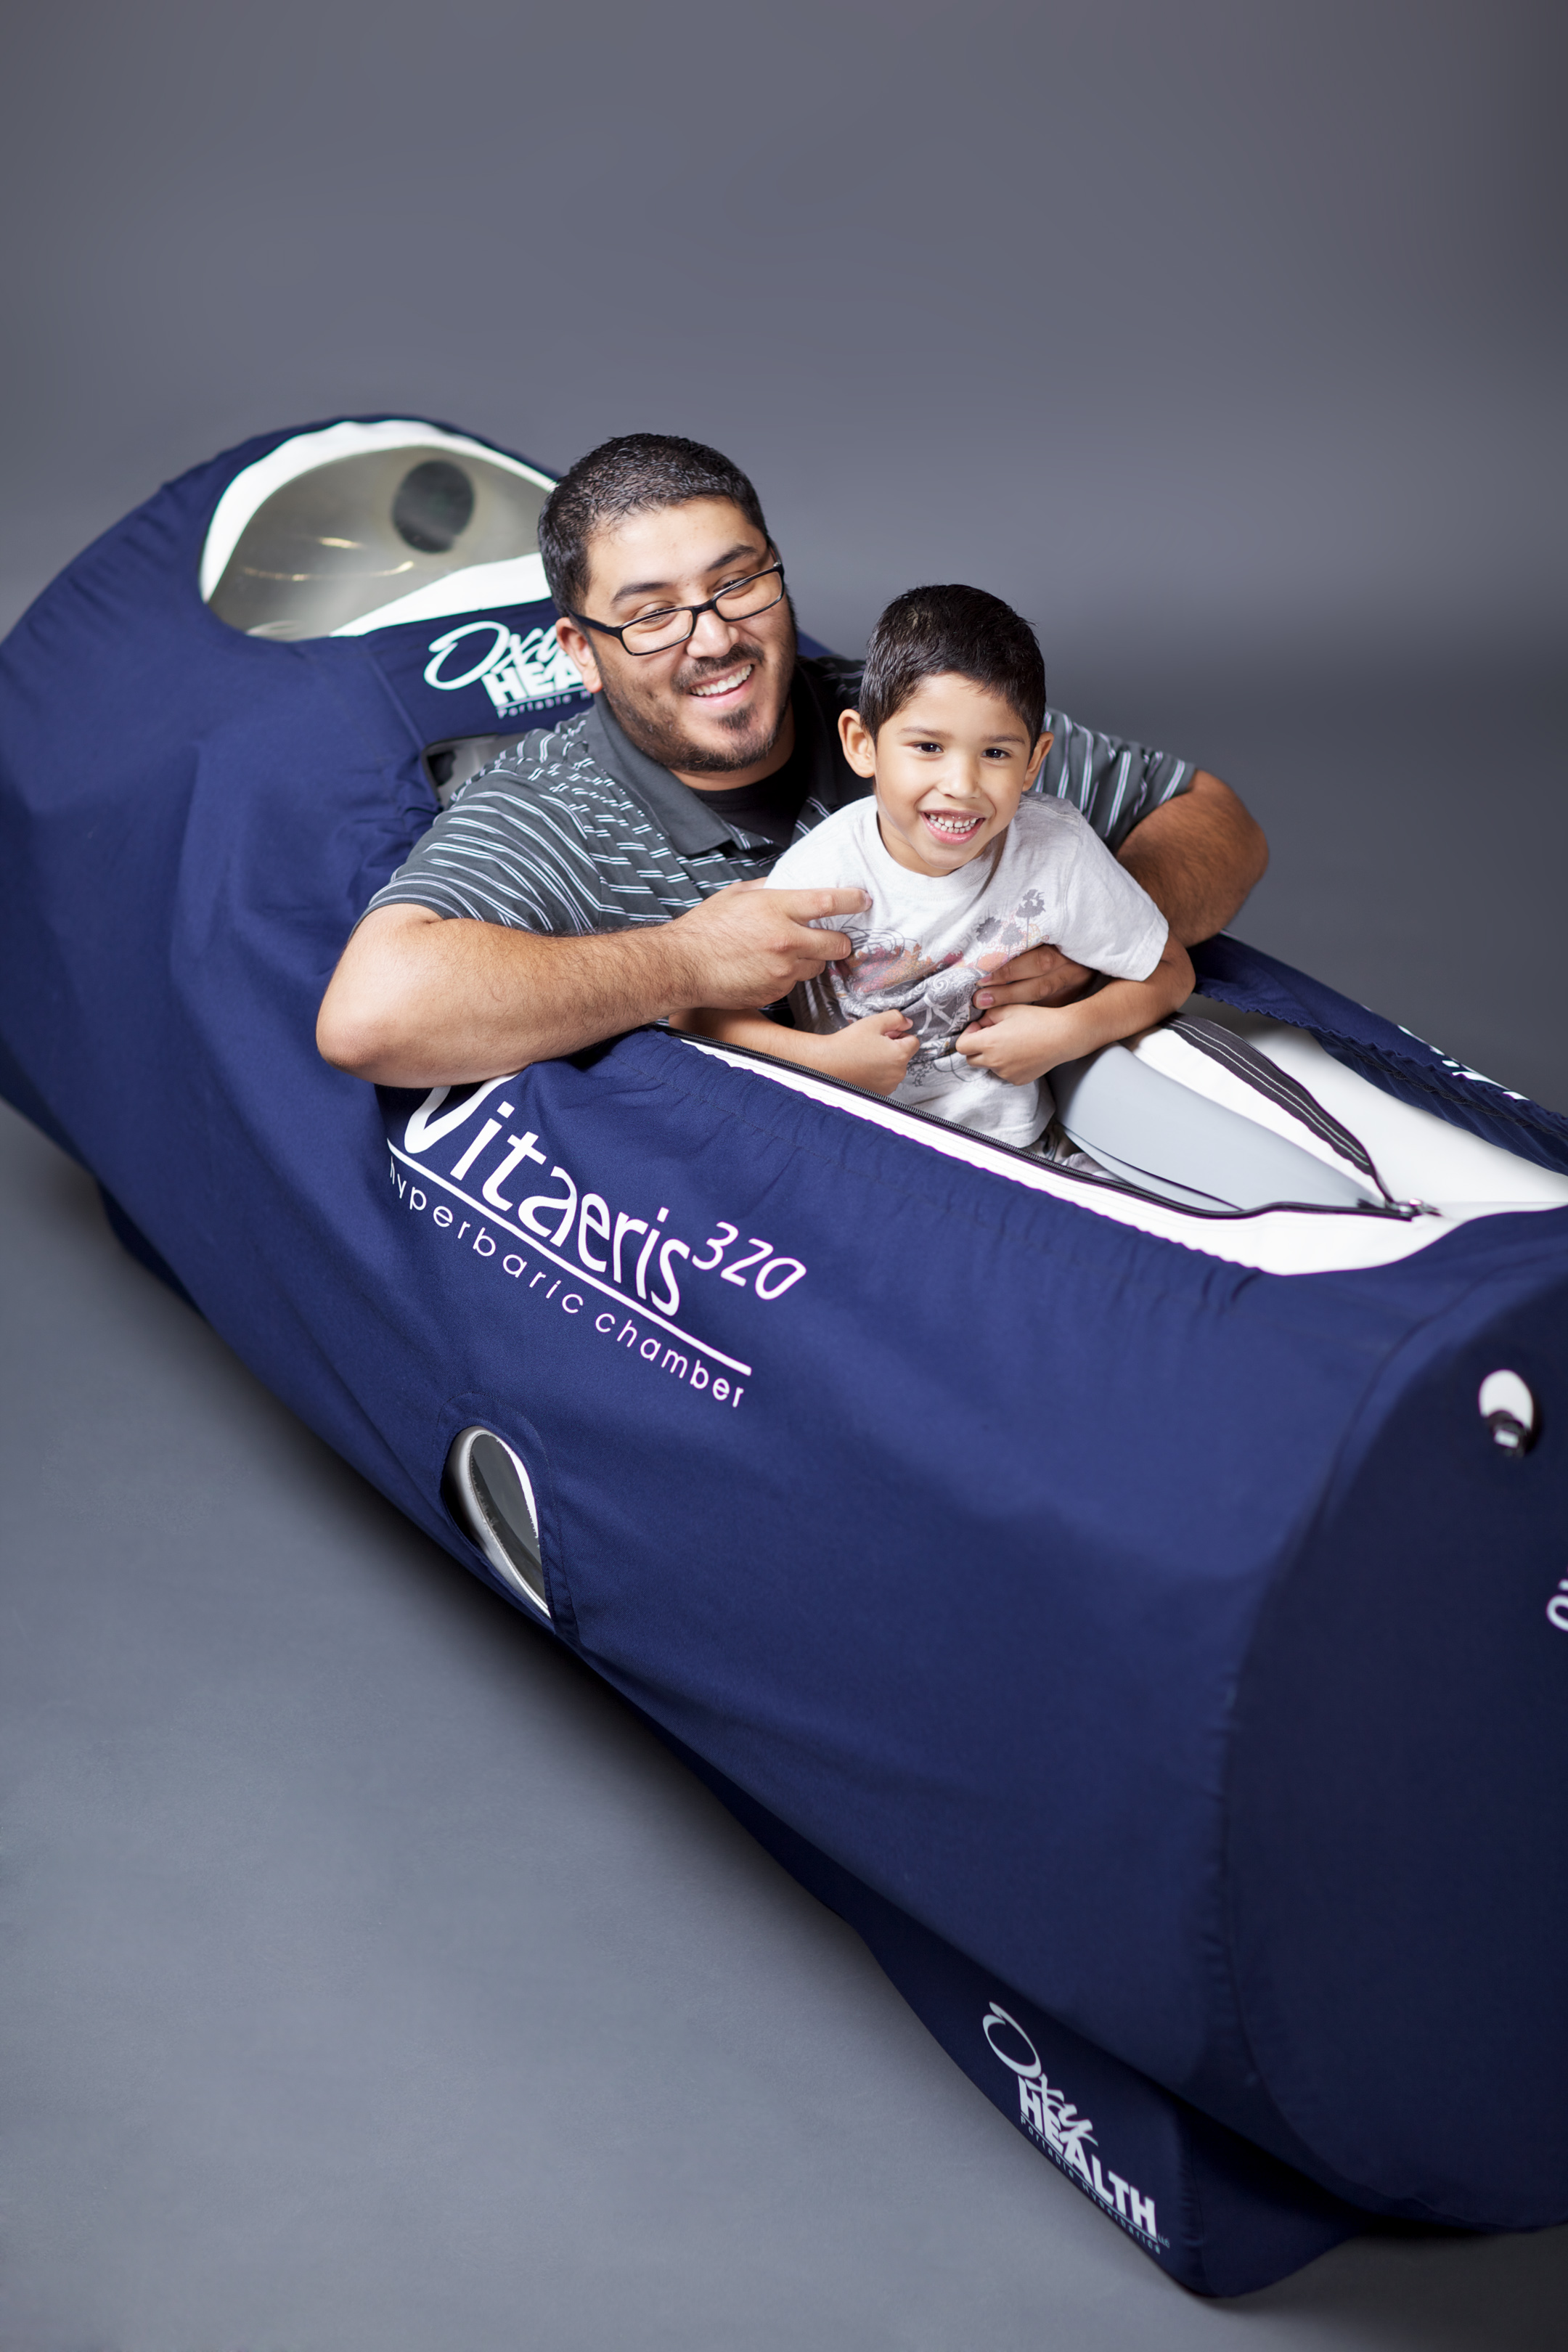 Hyperbaric Oxygen Therapy (HBOT) for Cancer patients 1